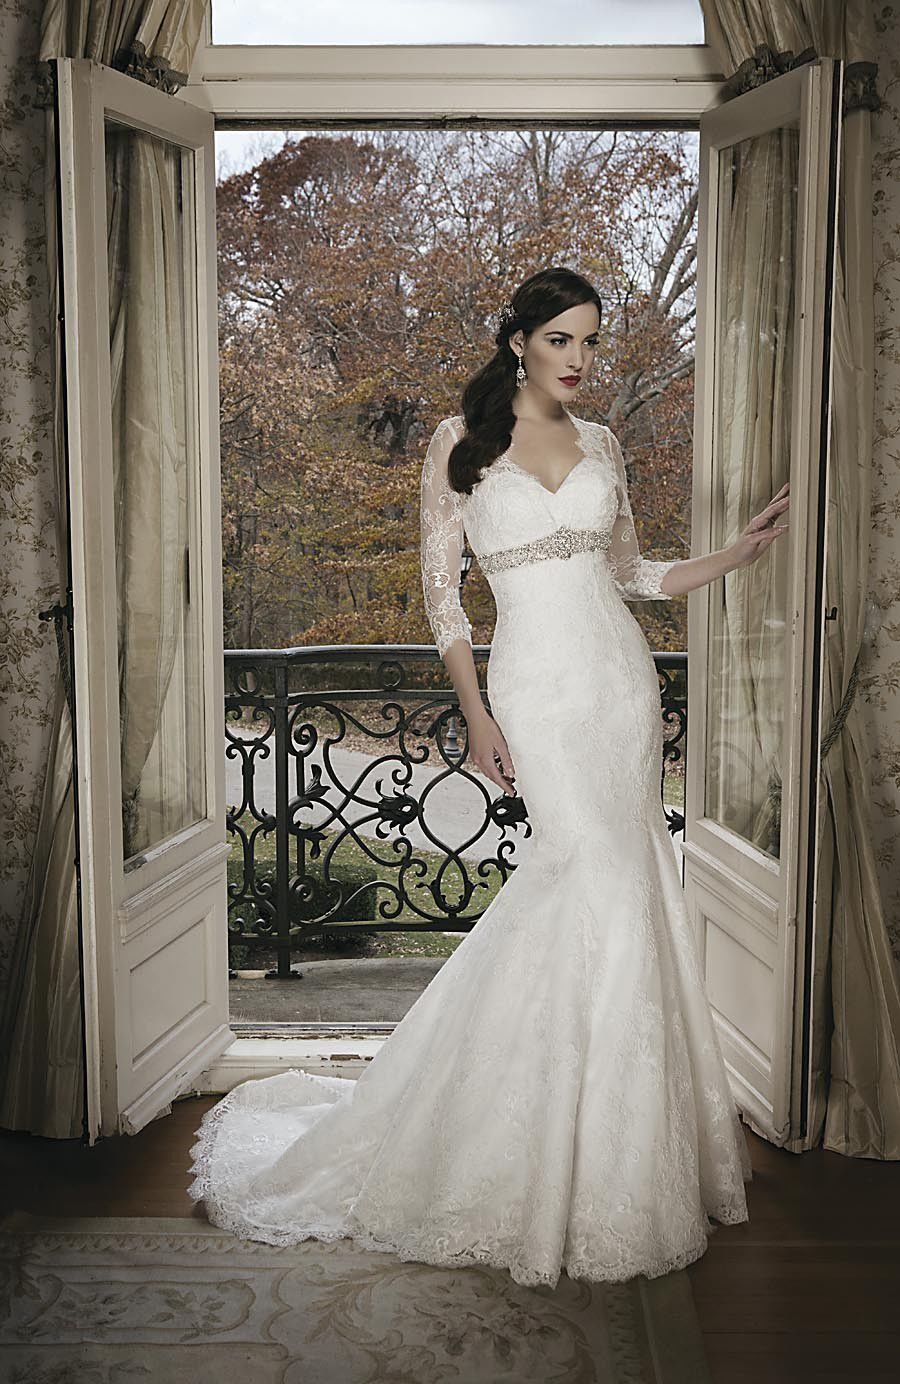 Modern wedding gowns with vintage inspiration | Weddings ...